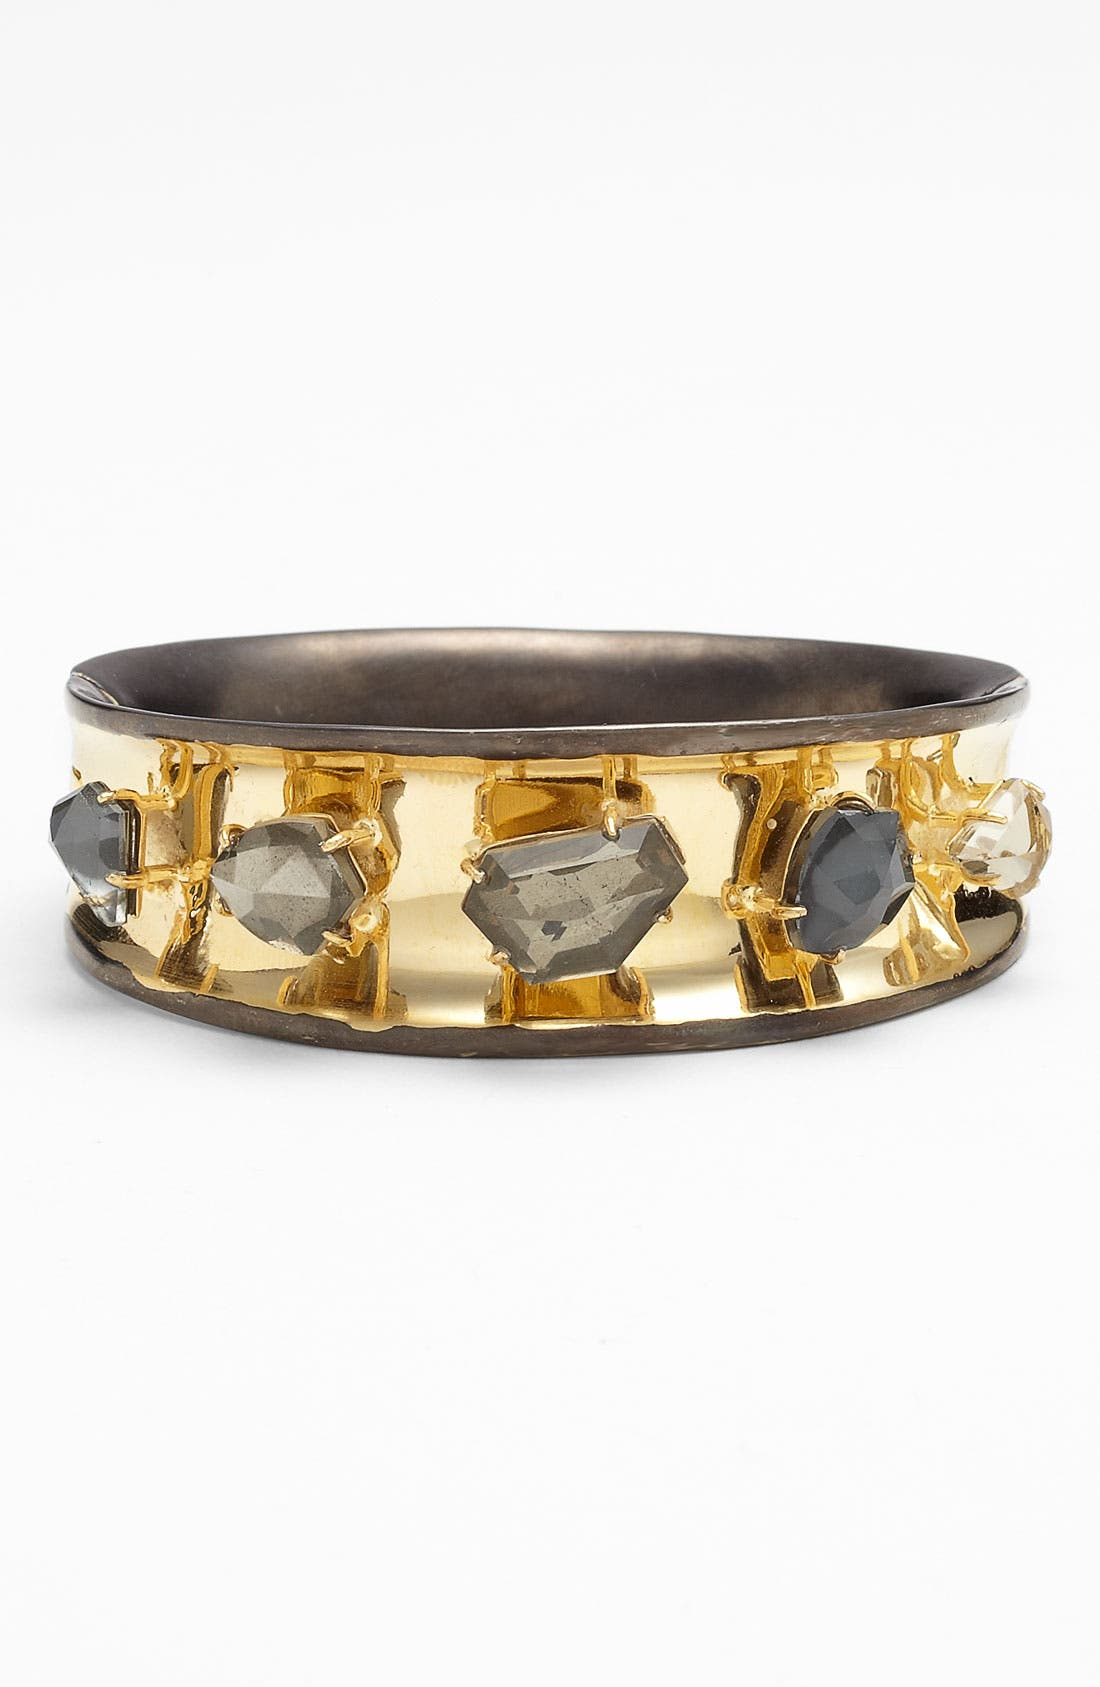 Main Image - Alexis Bittar 'Miss Havisham' Medium Hinged Bracelet